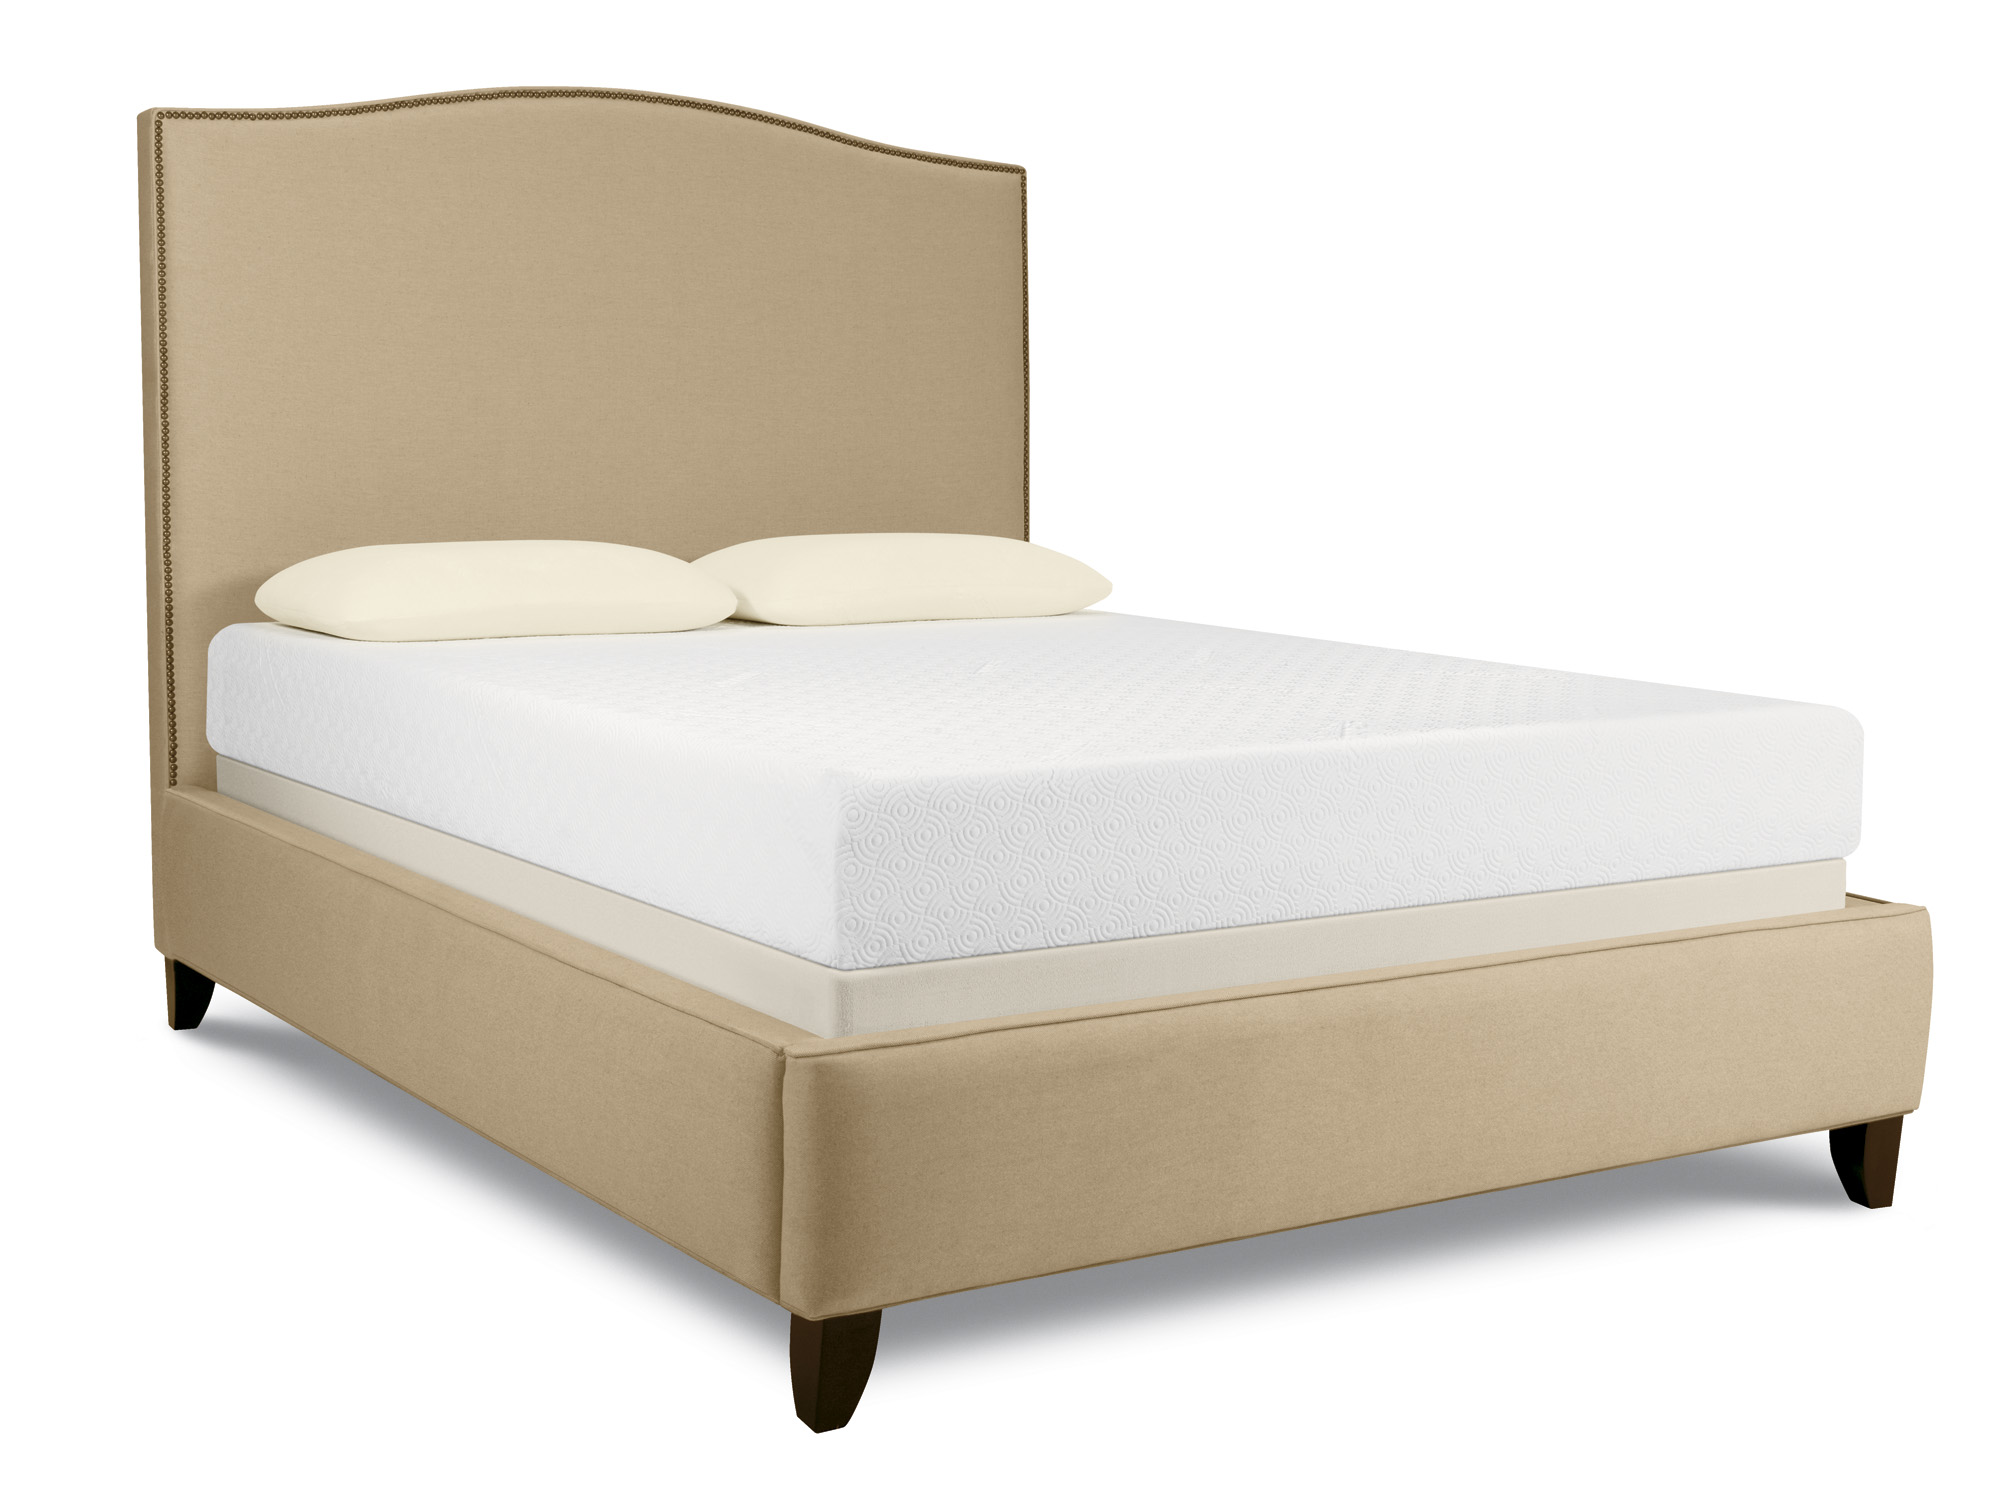 new style 26ecf c3f5d Tempur-Pedic Cloud Mattresses - Philadelphia & NJ